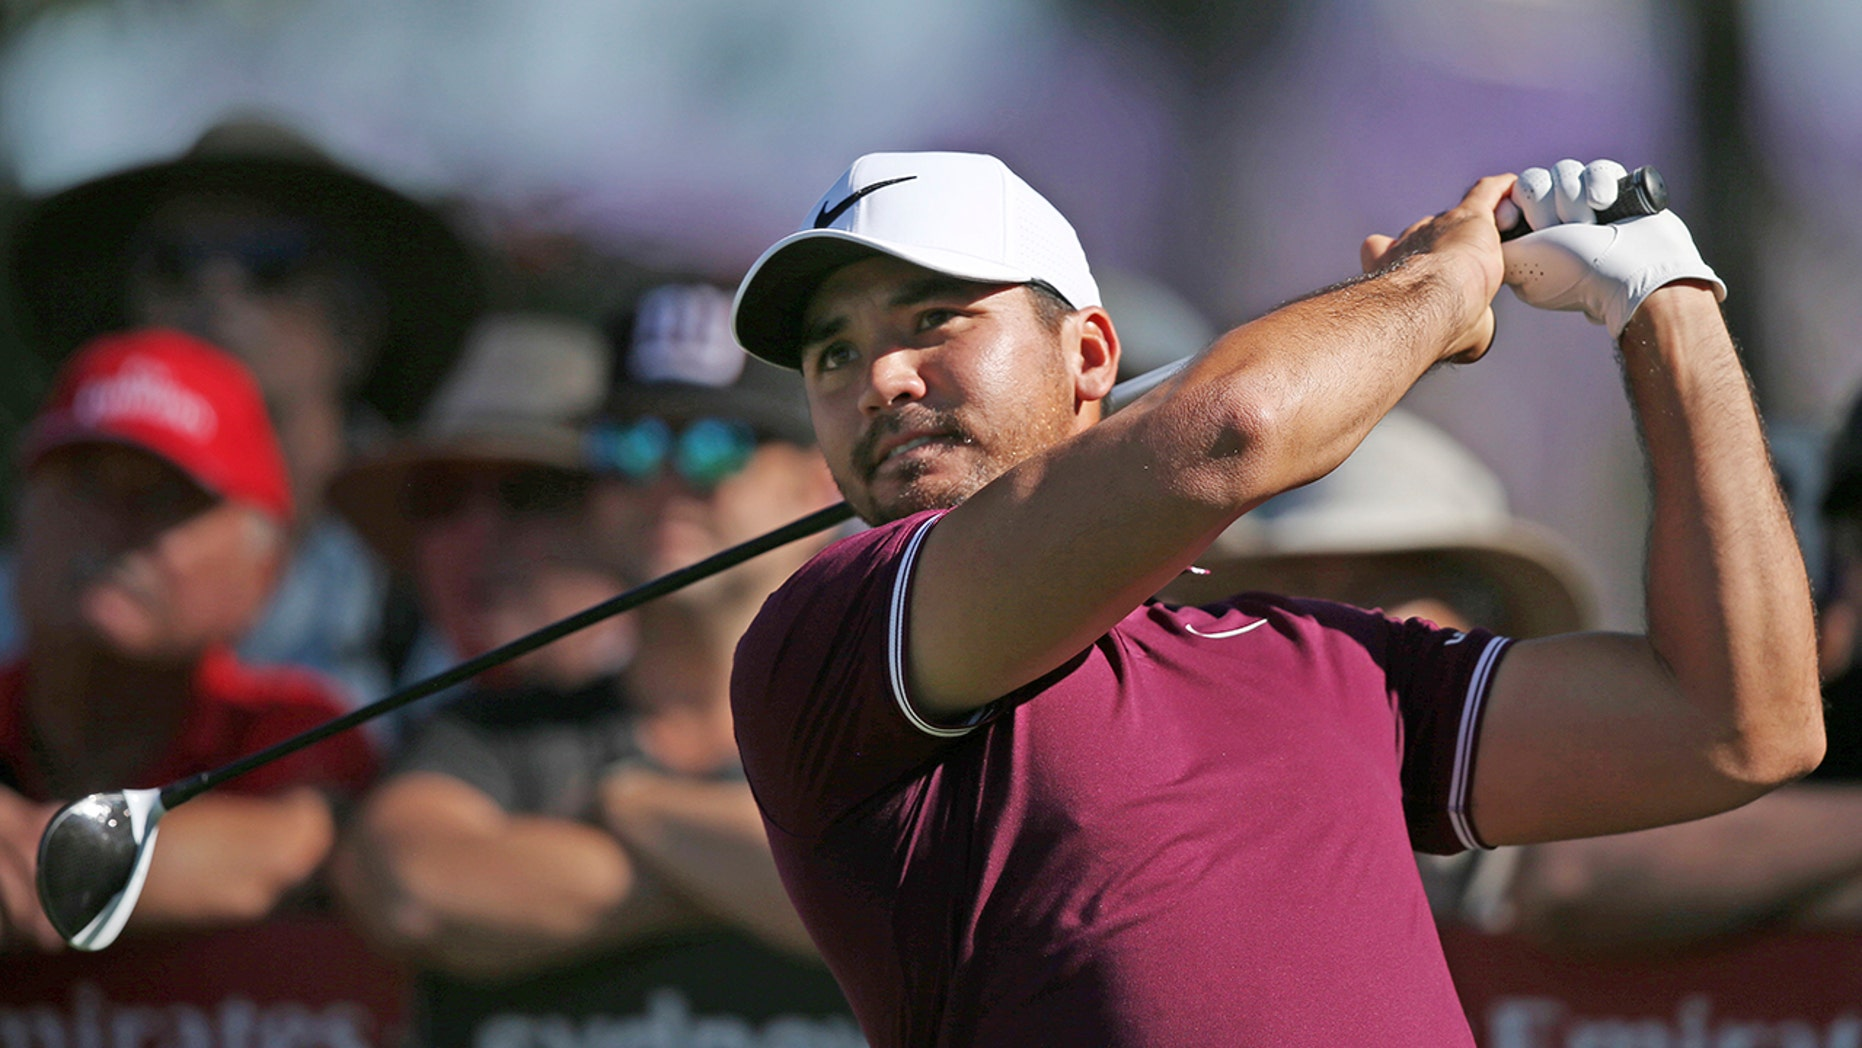 Jason Day's wife revealed on Instagram that she suffered a miscarriage in November.